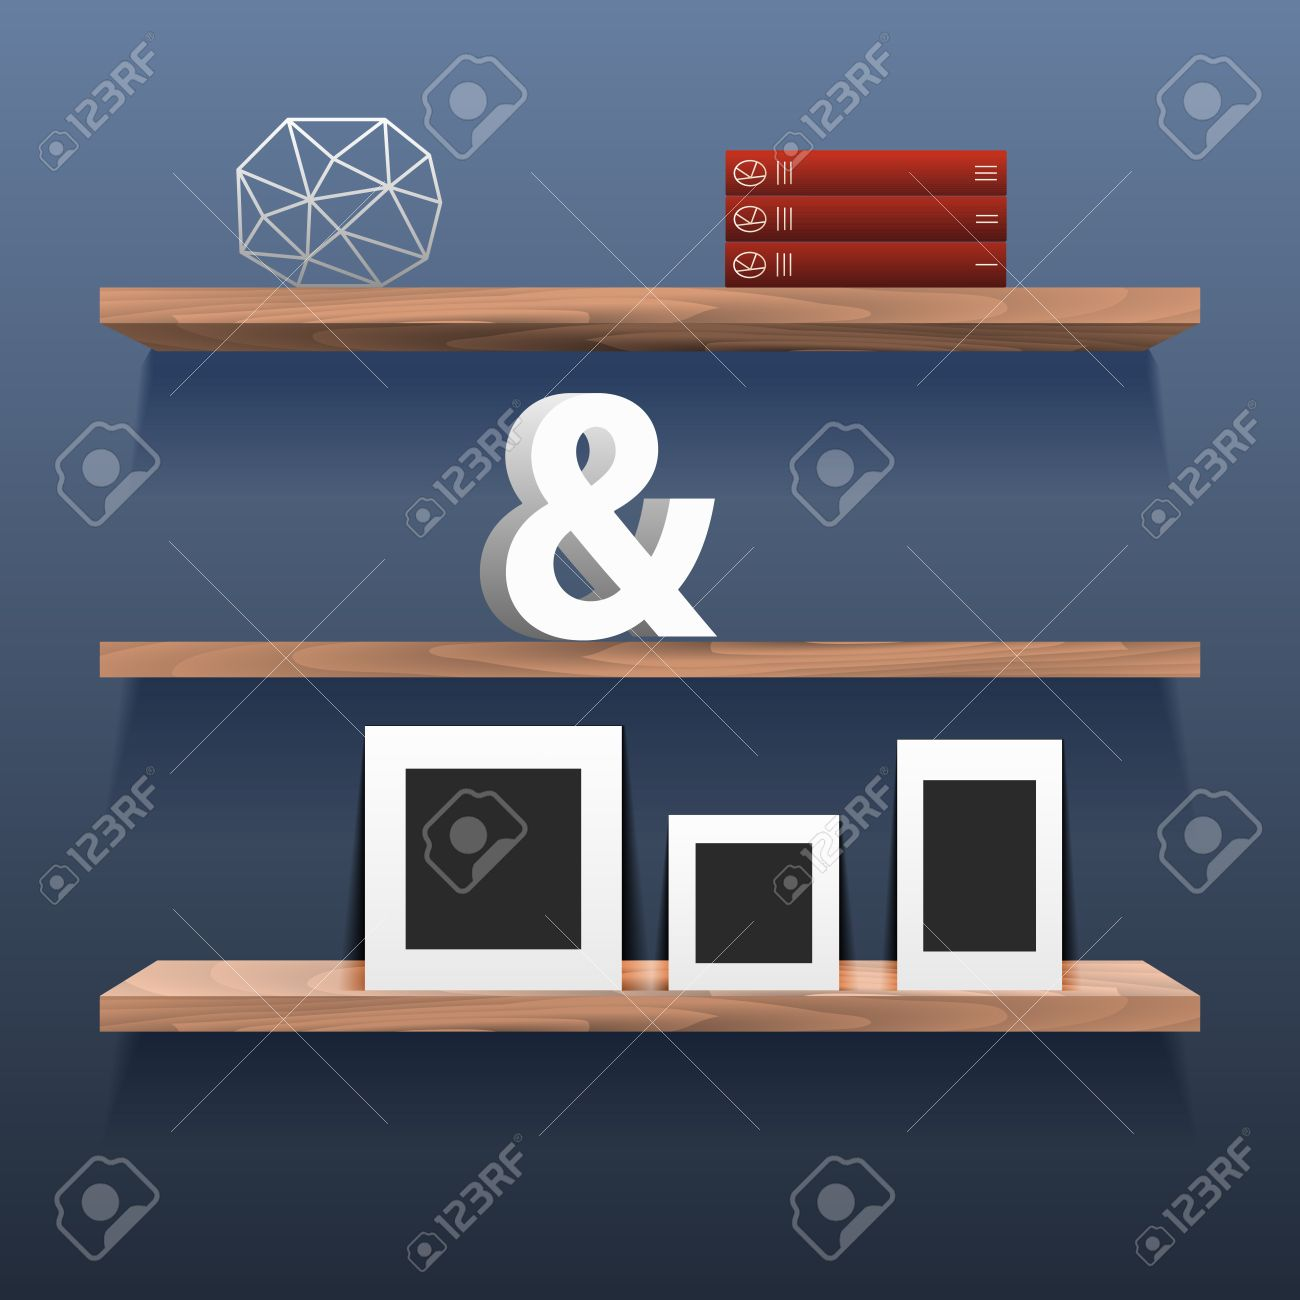 Interior wooden shelves free vector - Book Shelves In Room Interior With Decor Blue Wall With Wood Storage For Decor